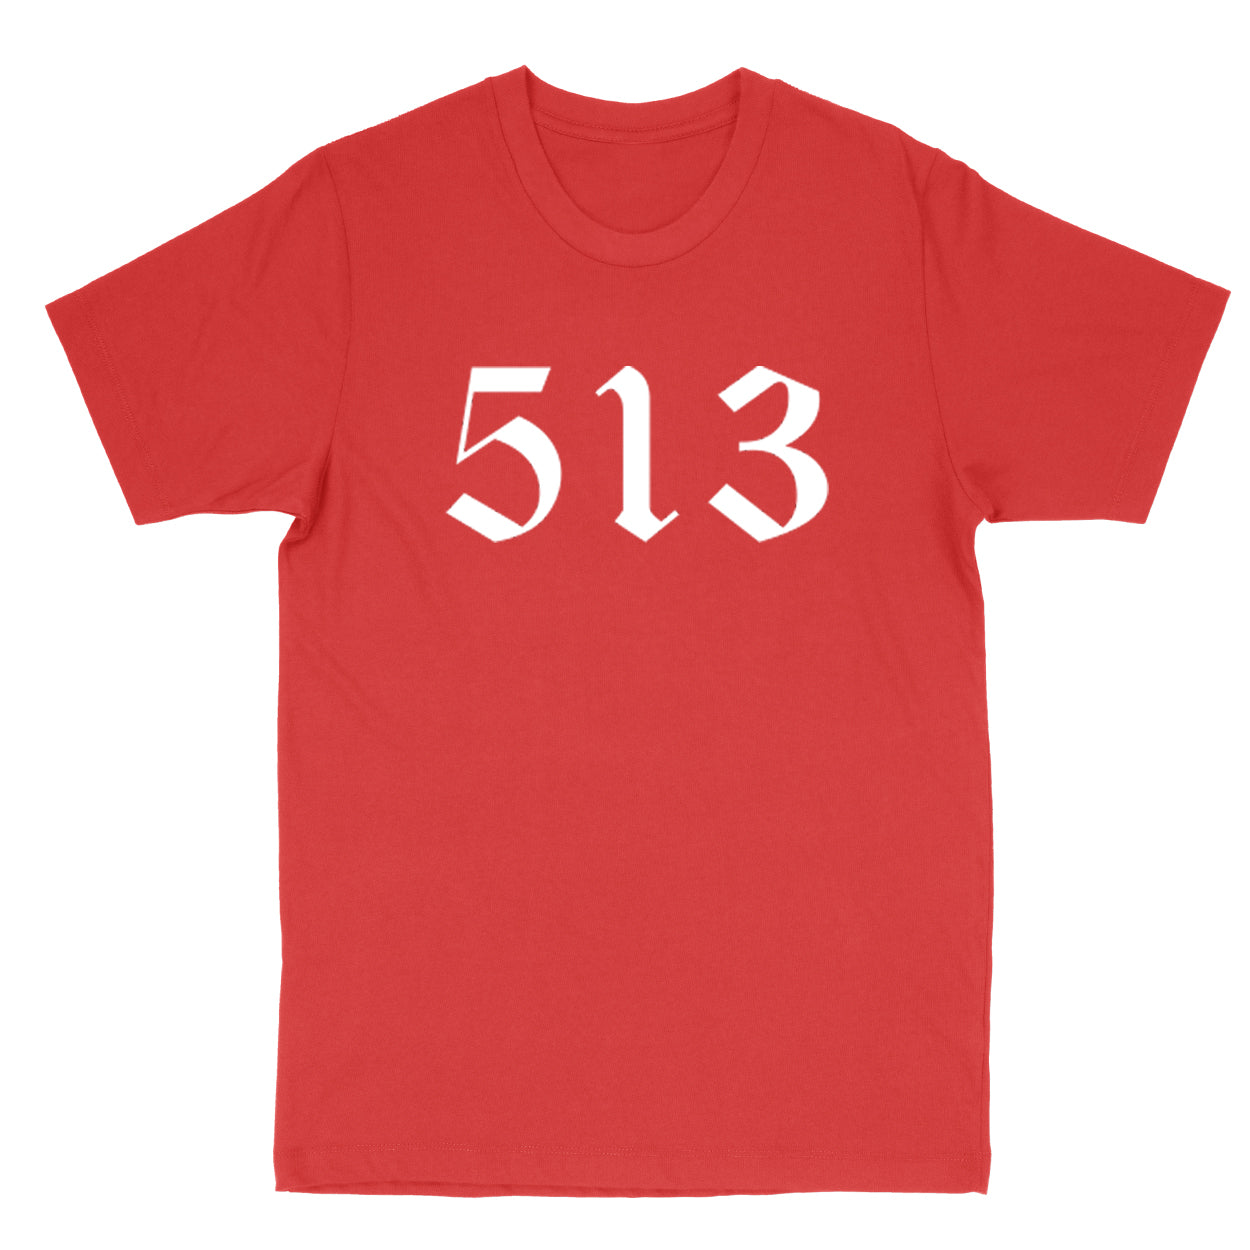 513 White Men's T-Shirt - Clothe Ohio - Soft Ohio Shirts